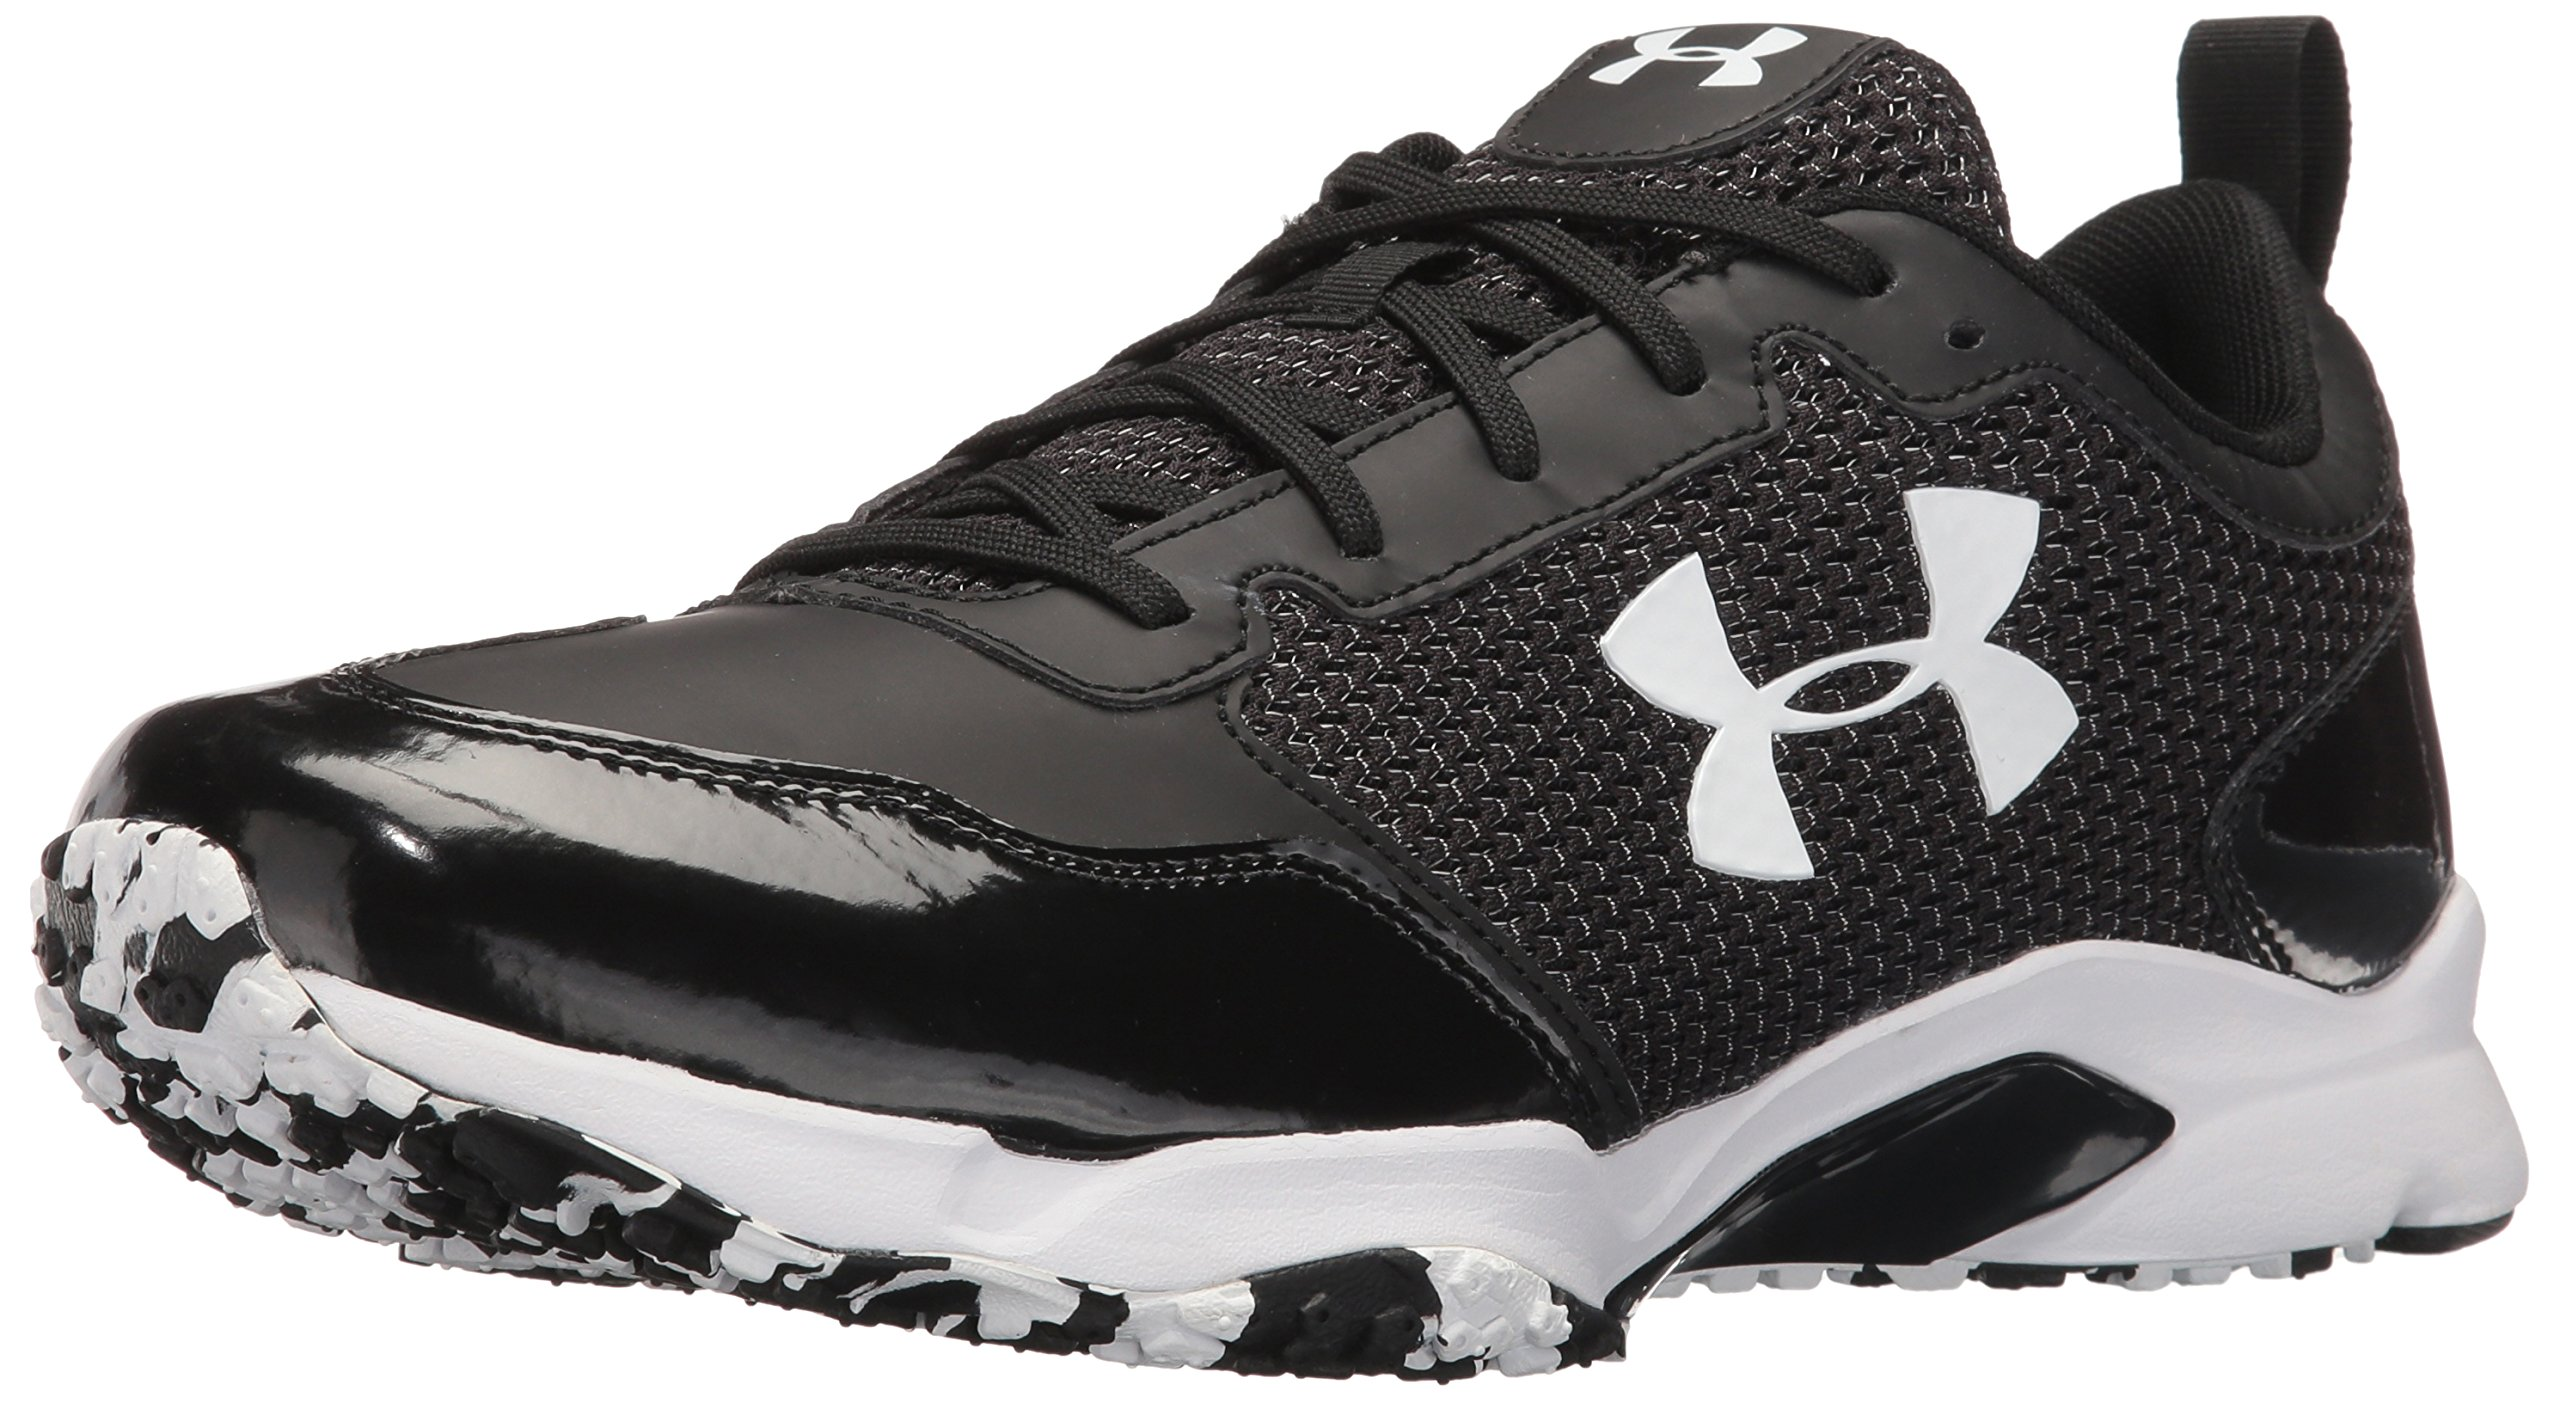 Under Armour Men's Ultimate Turf Trainer Baseball Shoe, Black (001)/Black, 13 by Under Armour